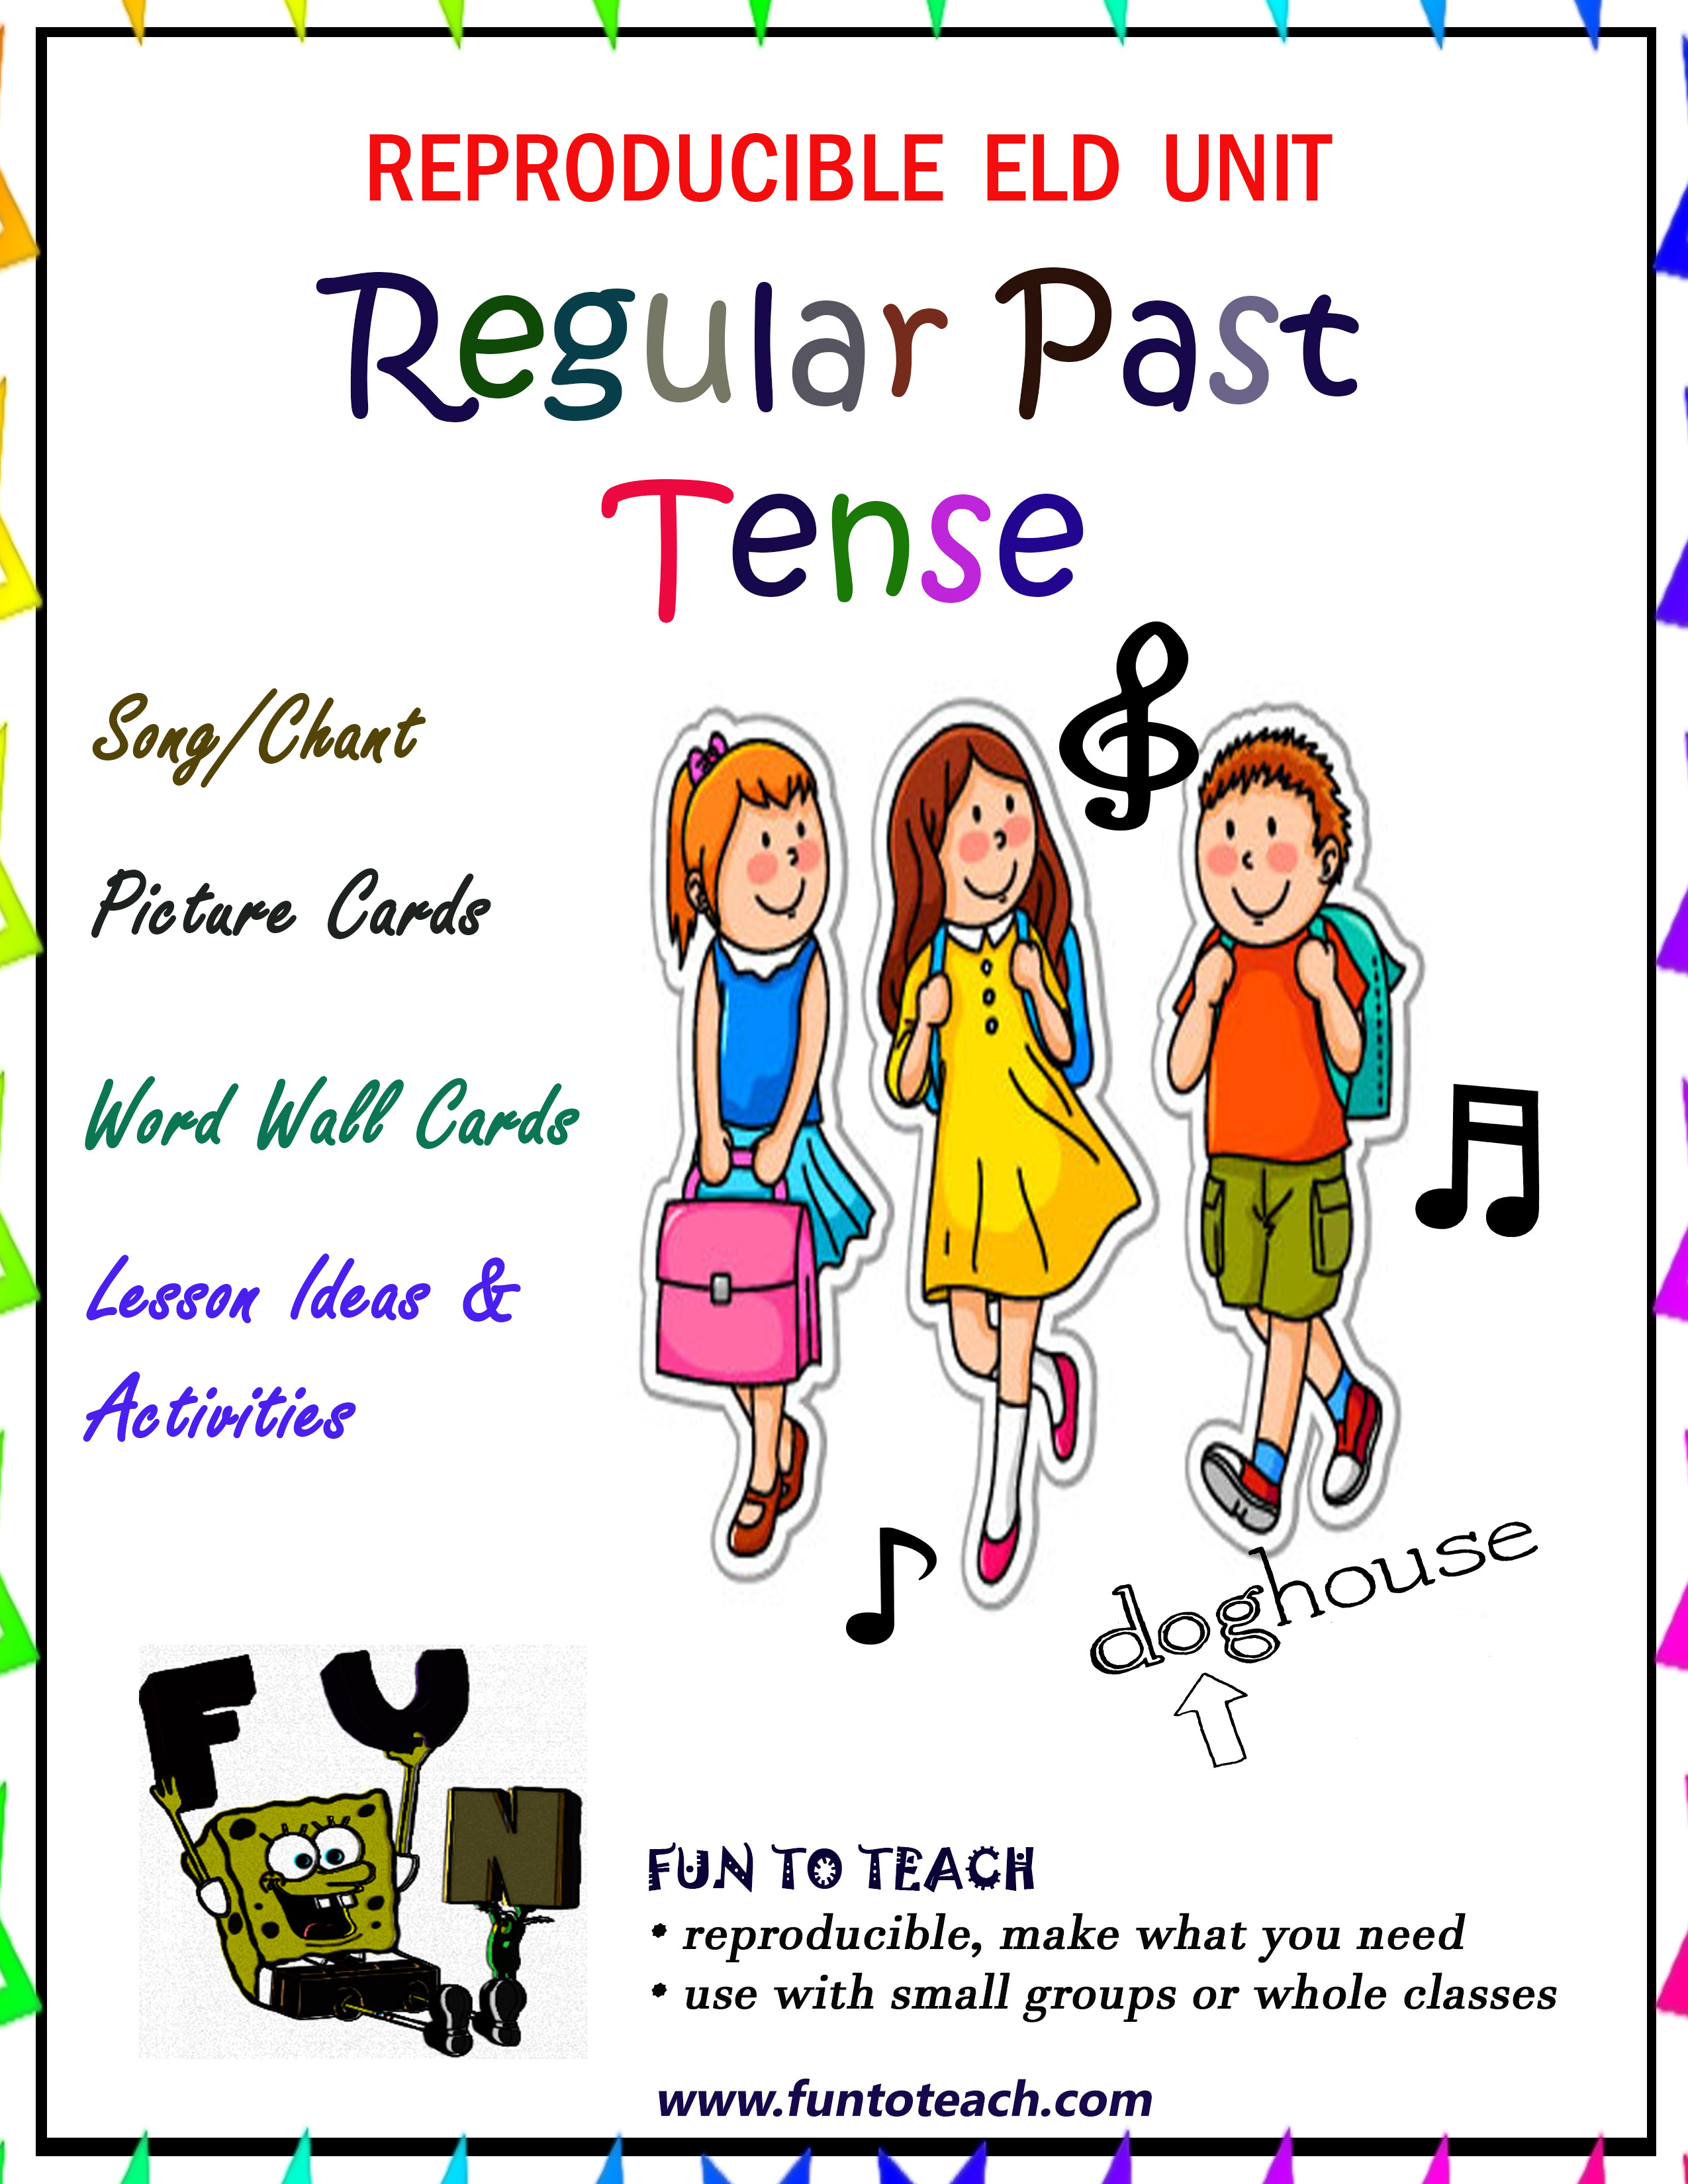 Regular-past-tense-verb-song-cover.jpg